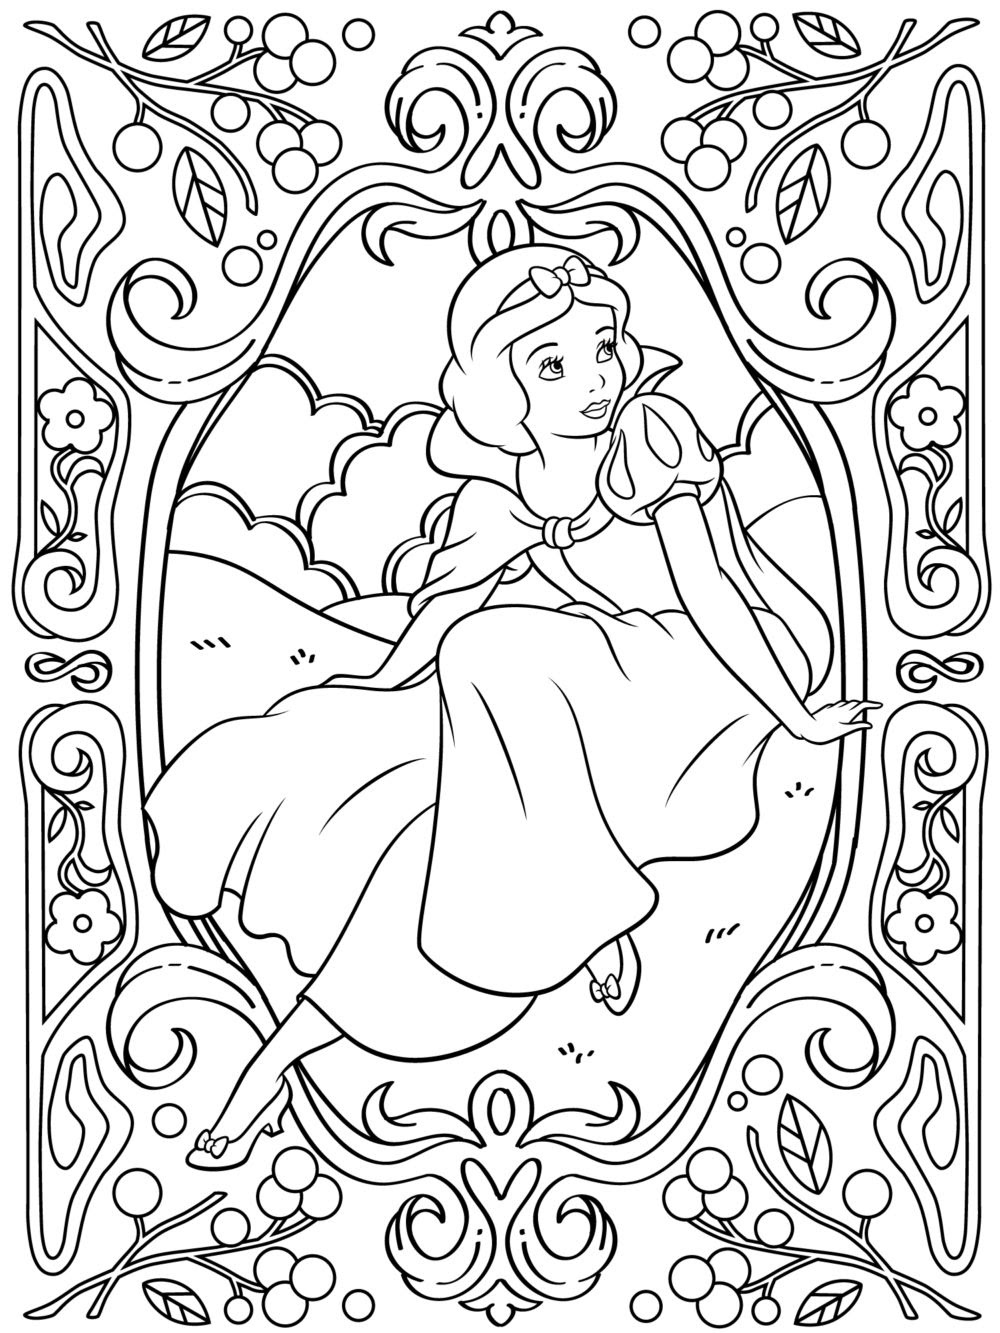 Coloring Pages For Adults Disney at GetColorings.com ...